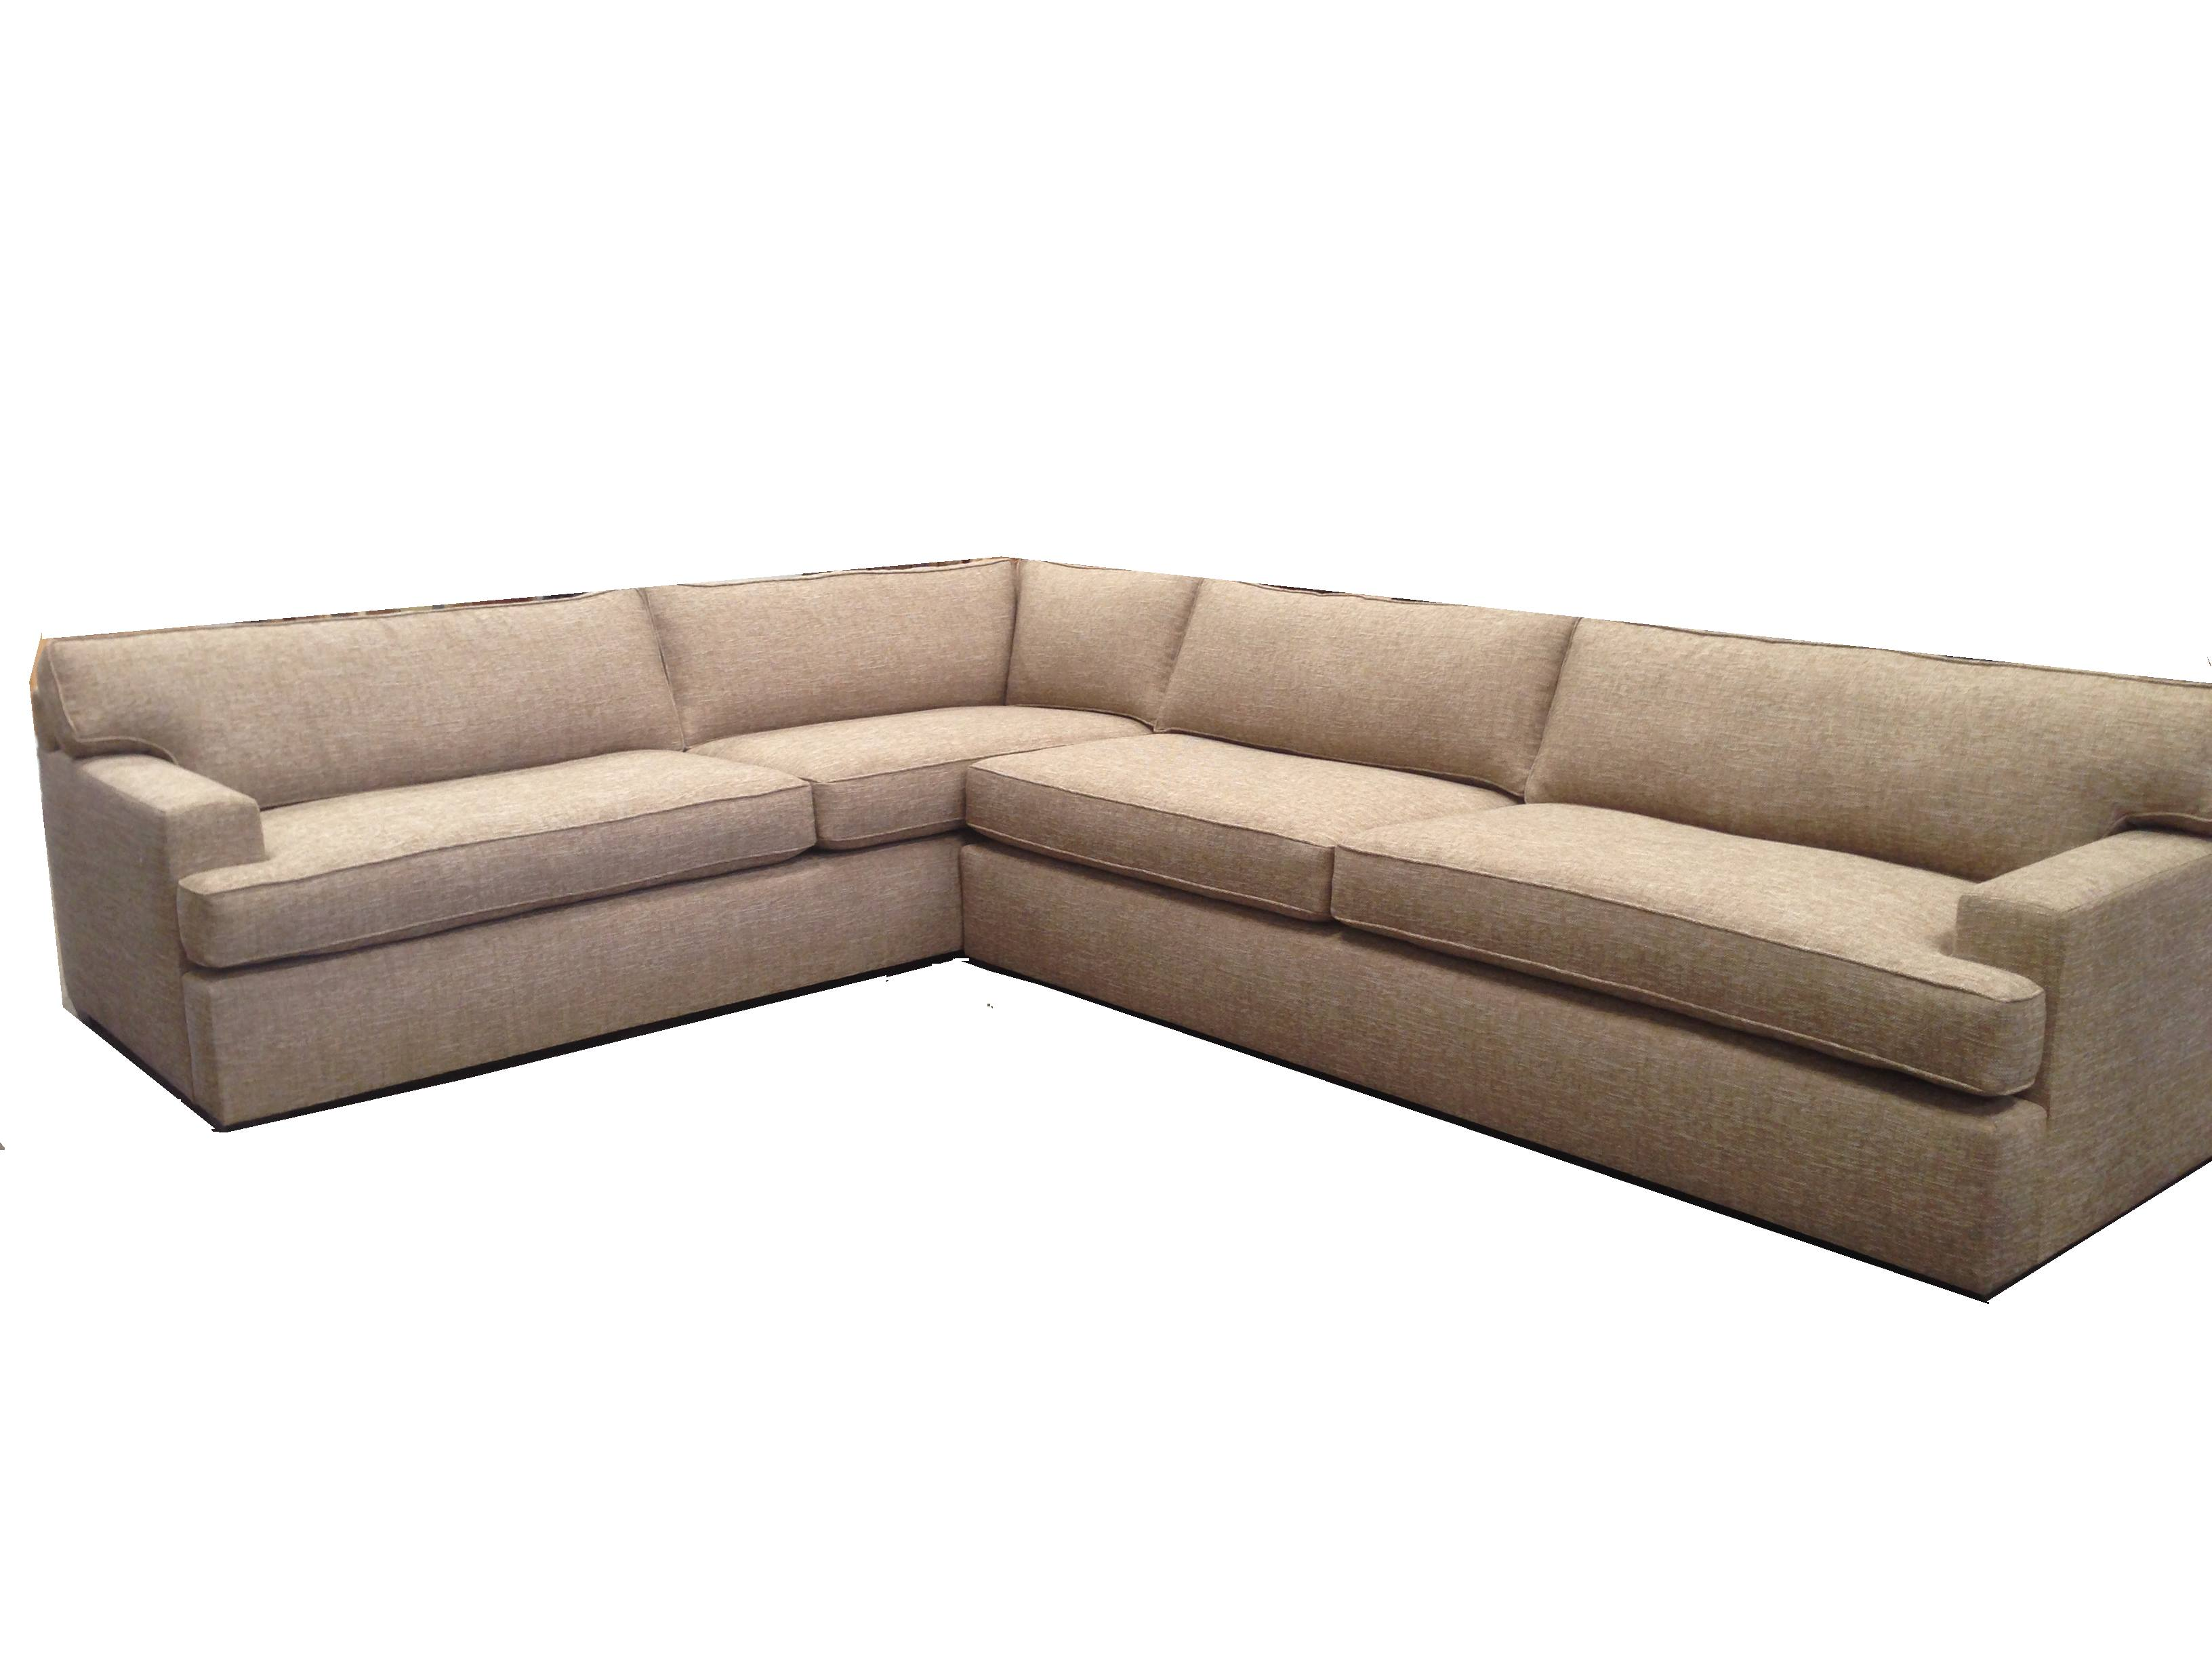 fy Couches Custom Made Sofas at Affordable Prices